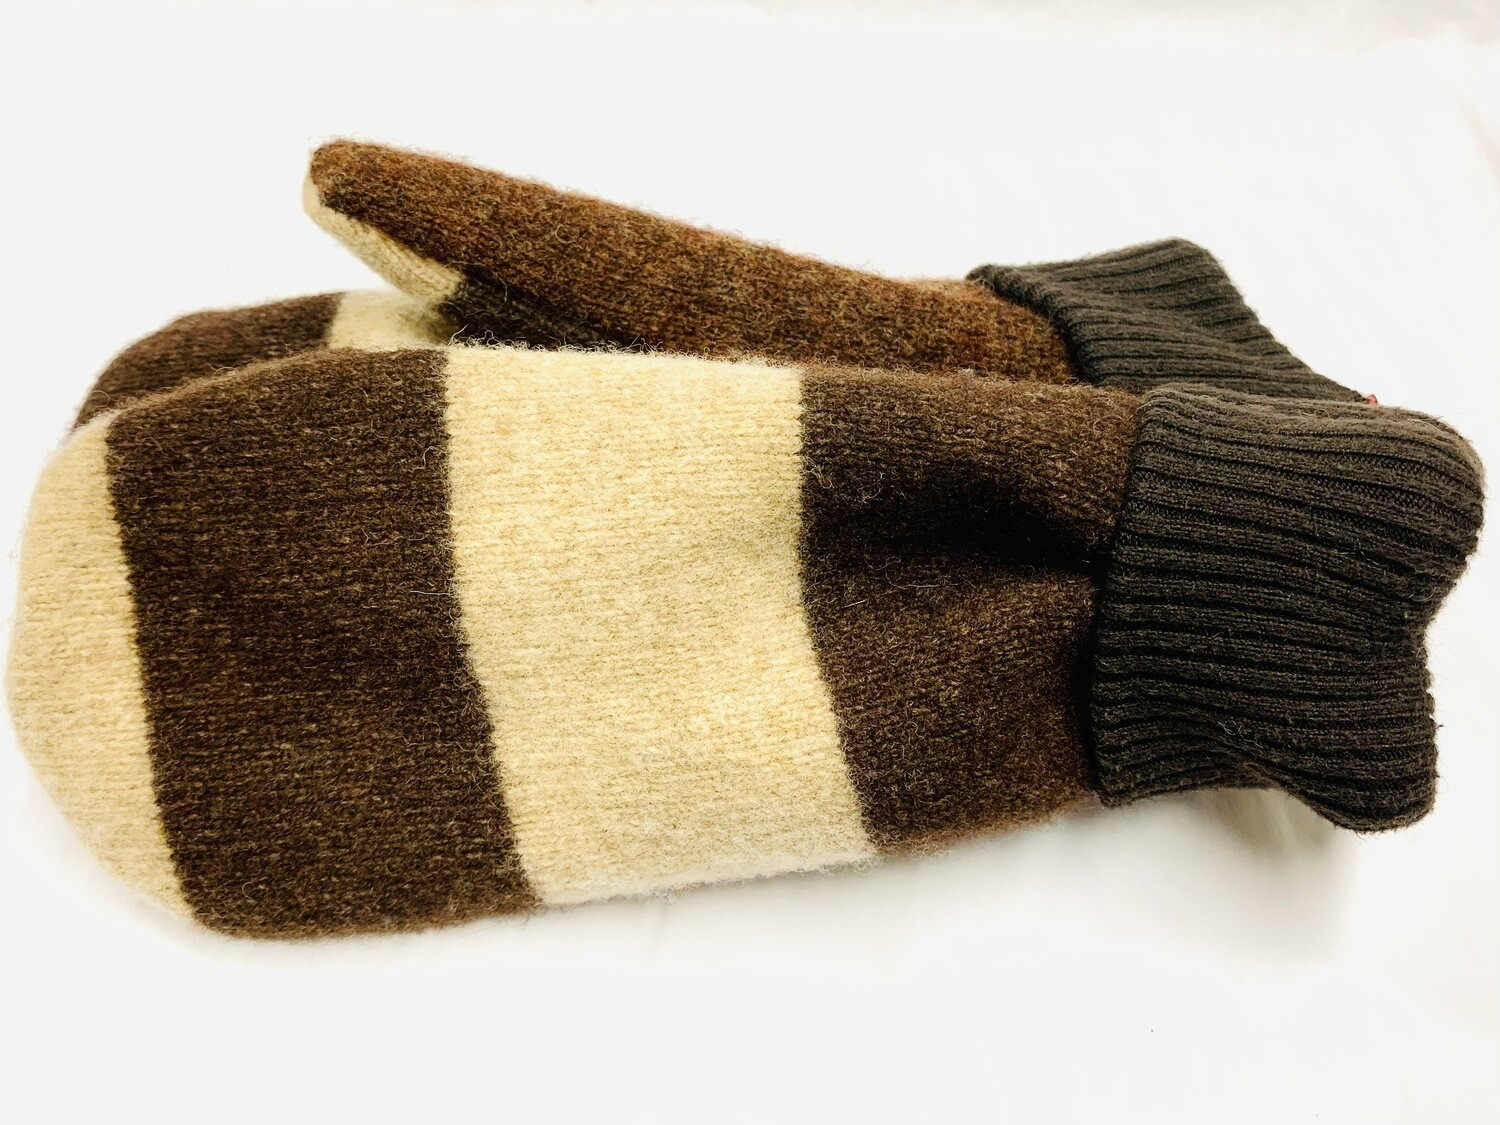 Brown Stripes, Small - Mary's Mittens